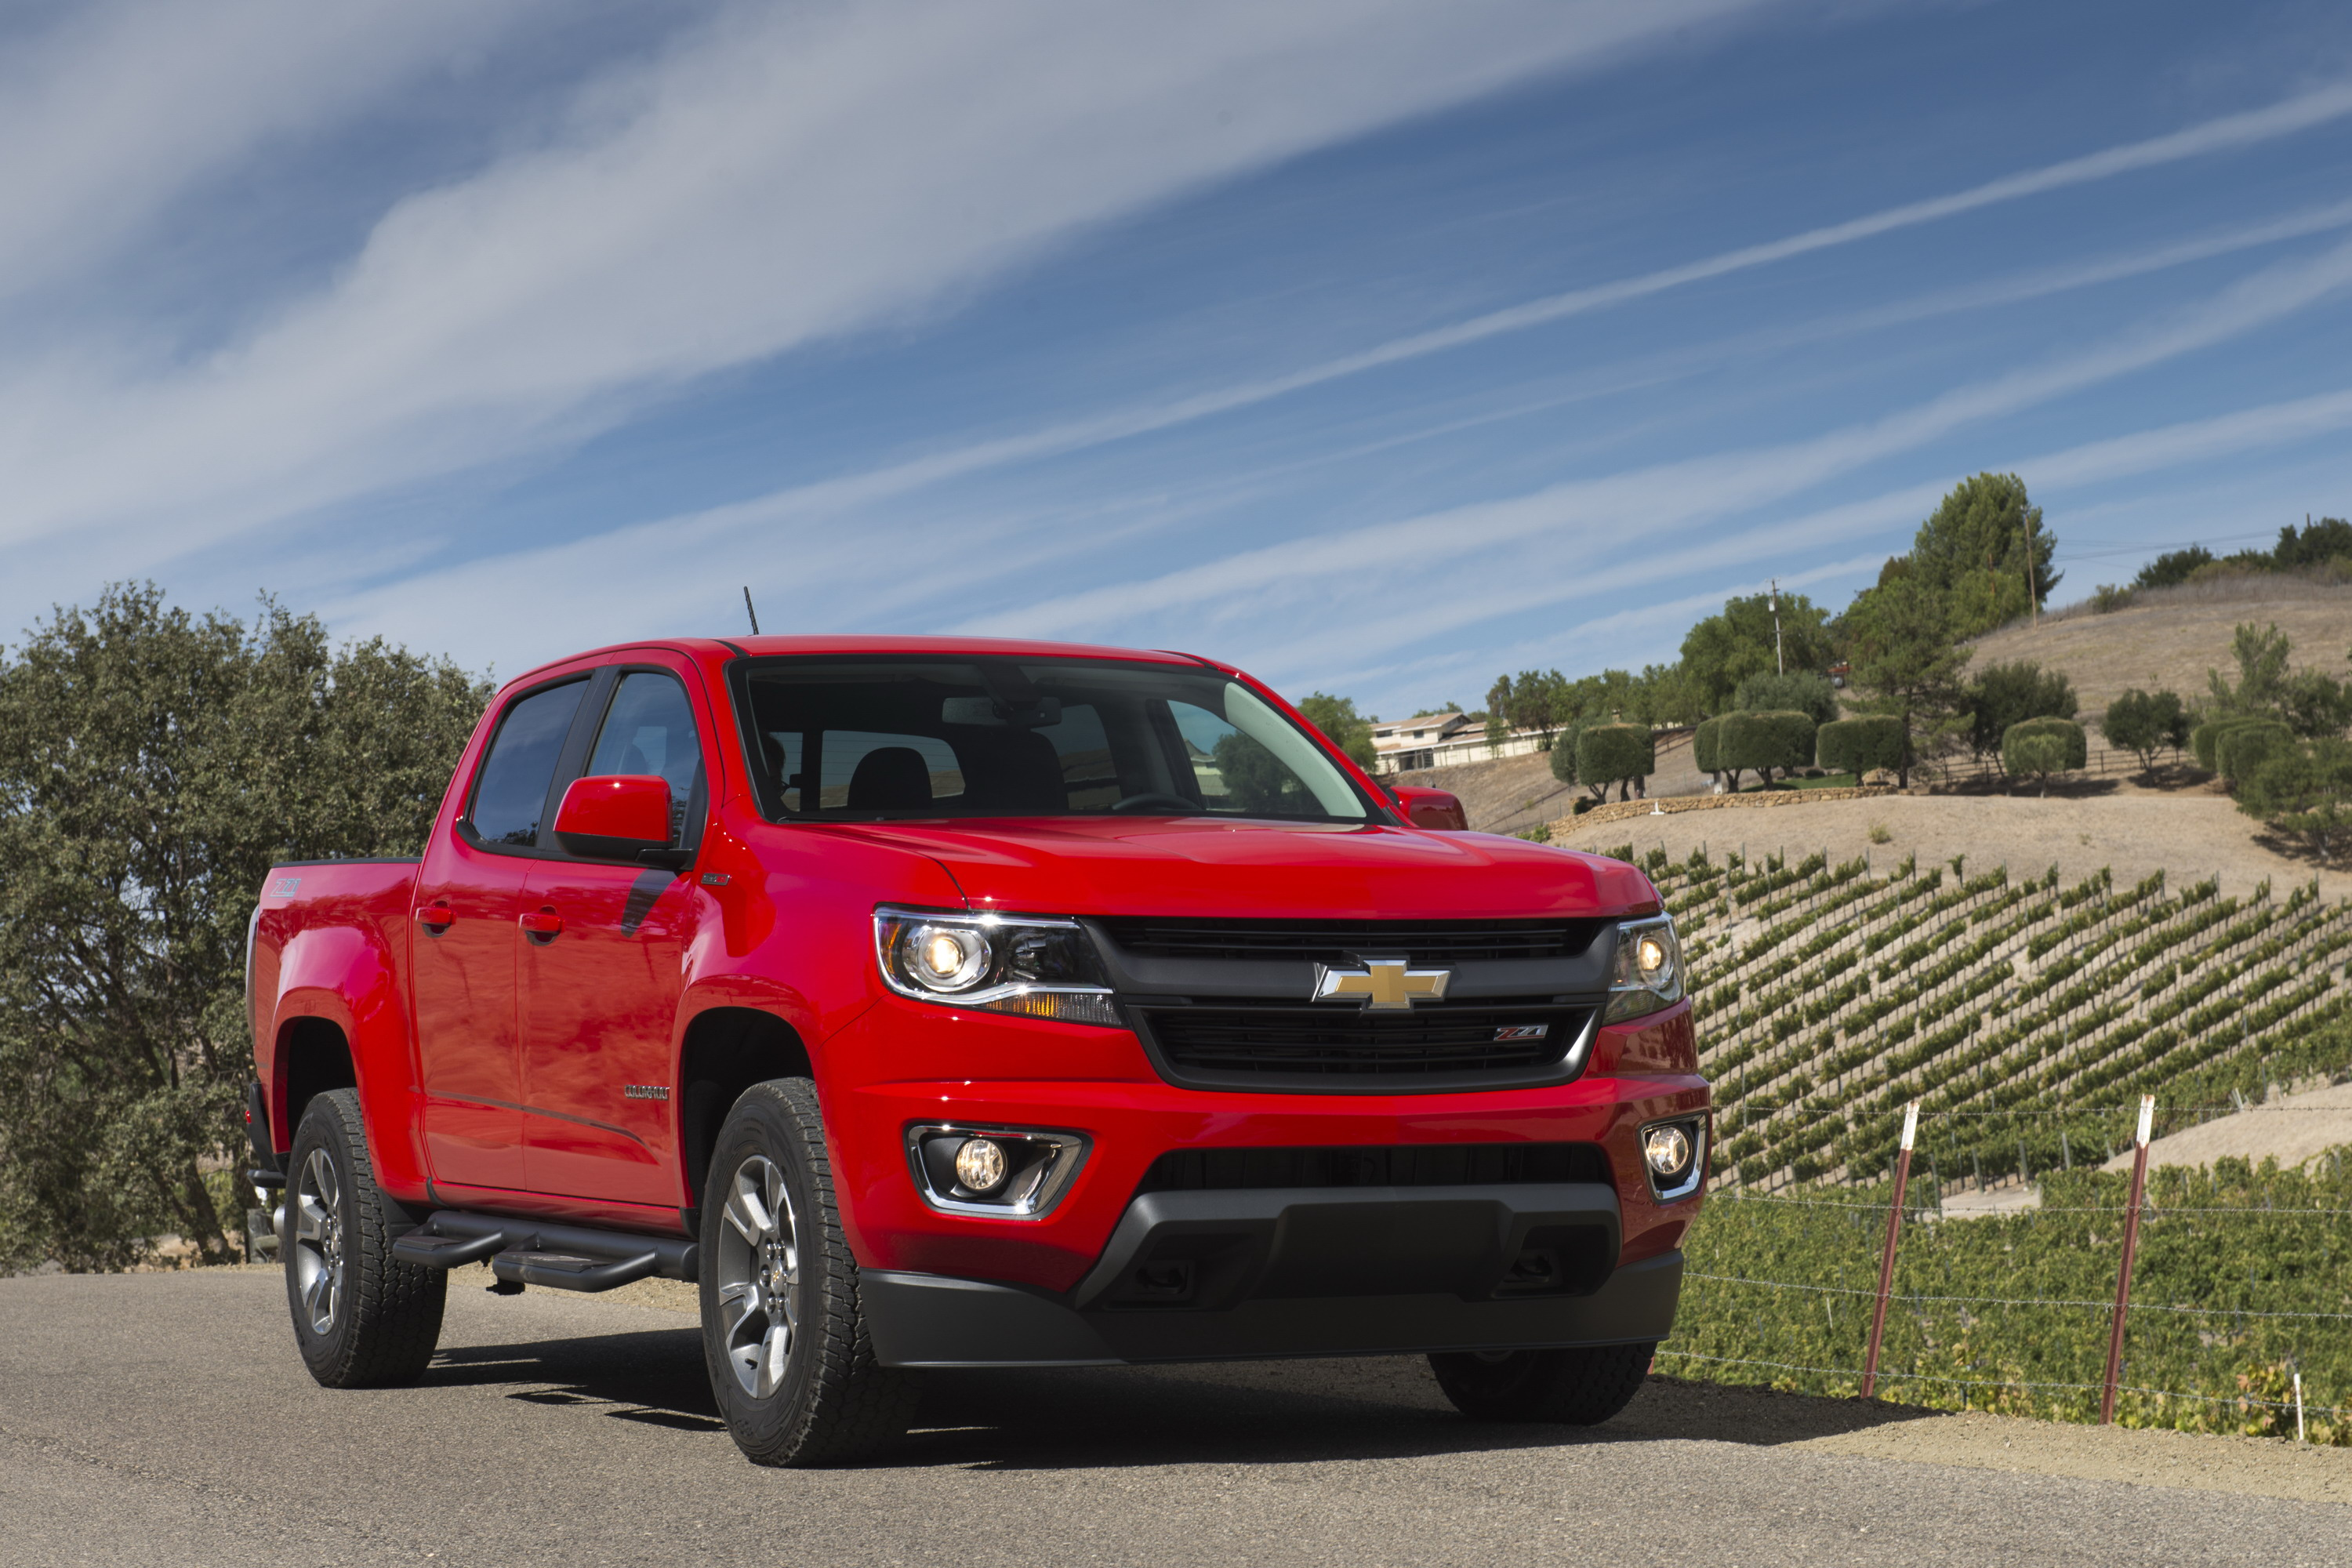 chevrolet unrau blog us truck motors the may colorado essig of s year inc tfltruck named trim